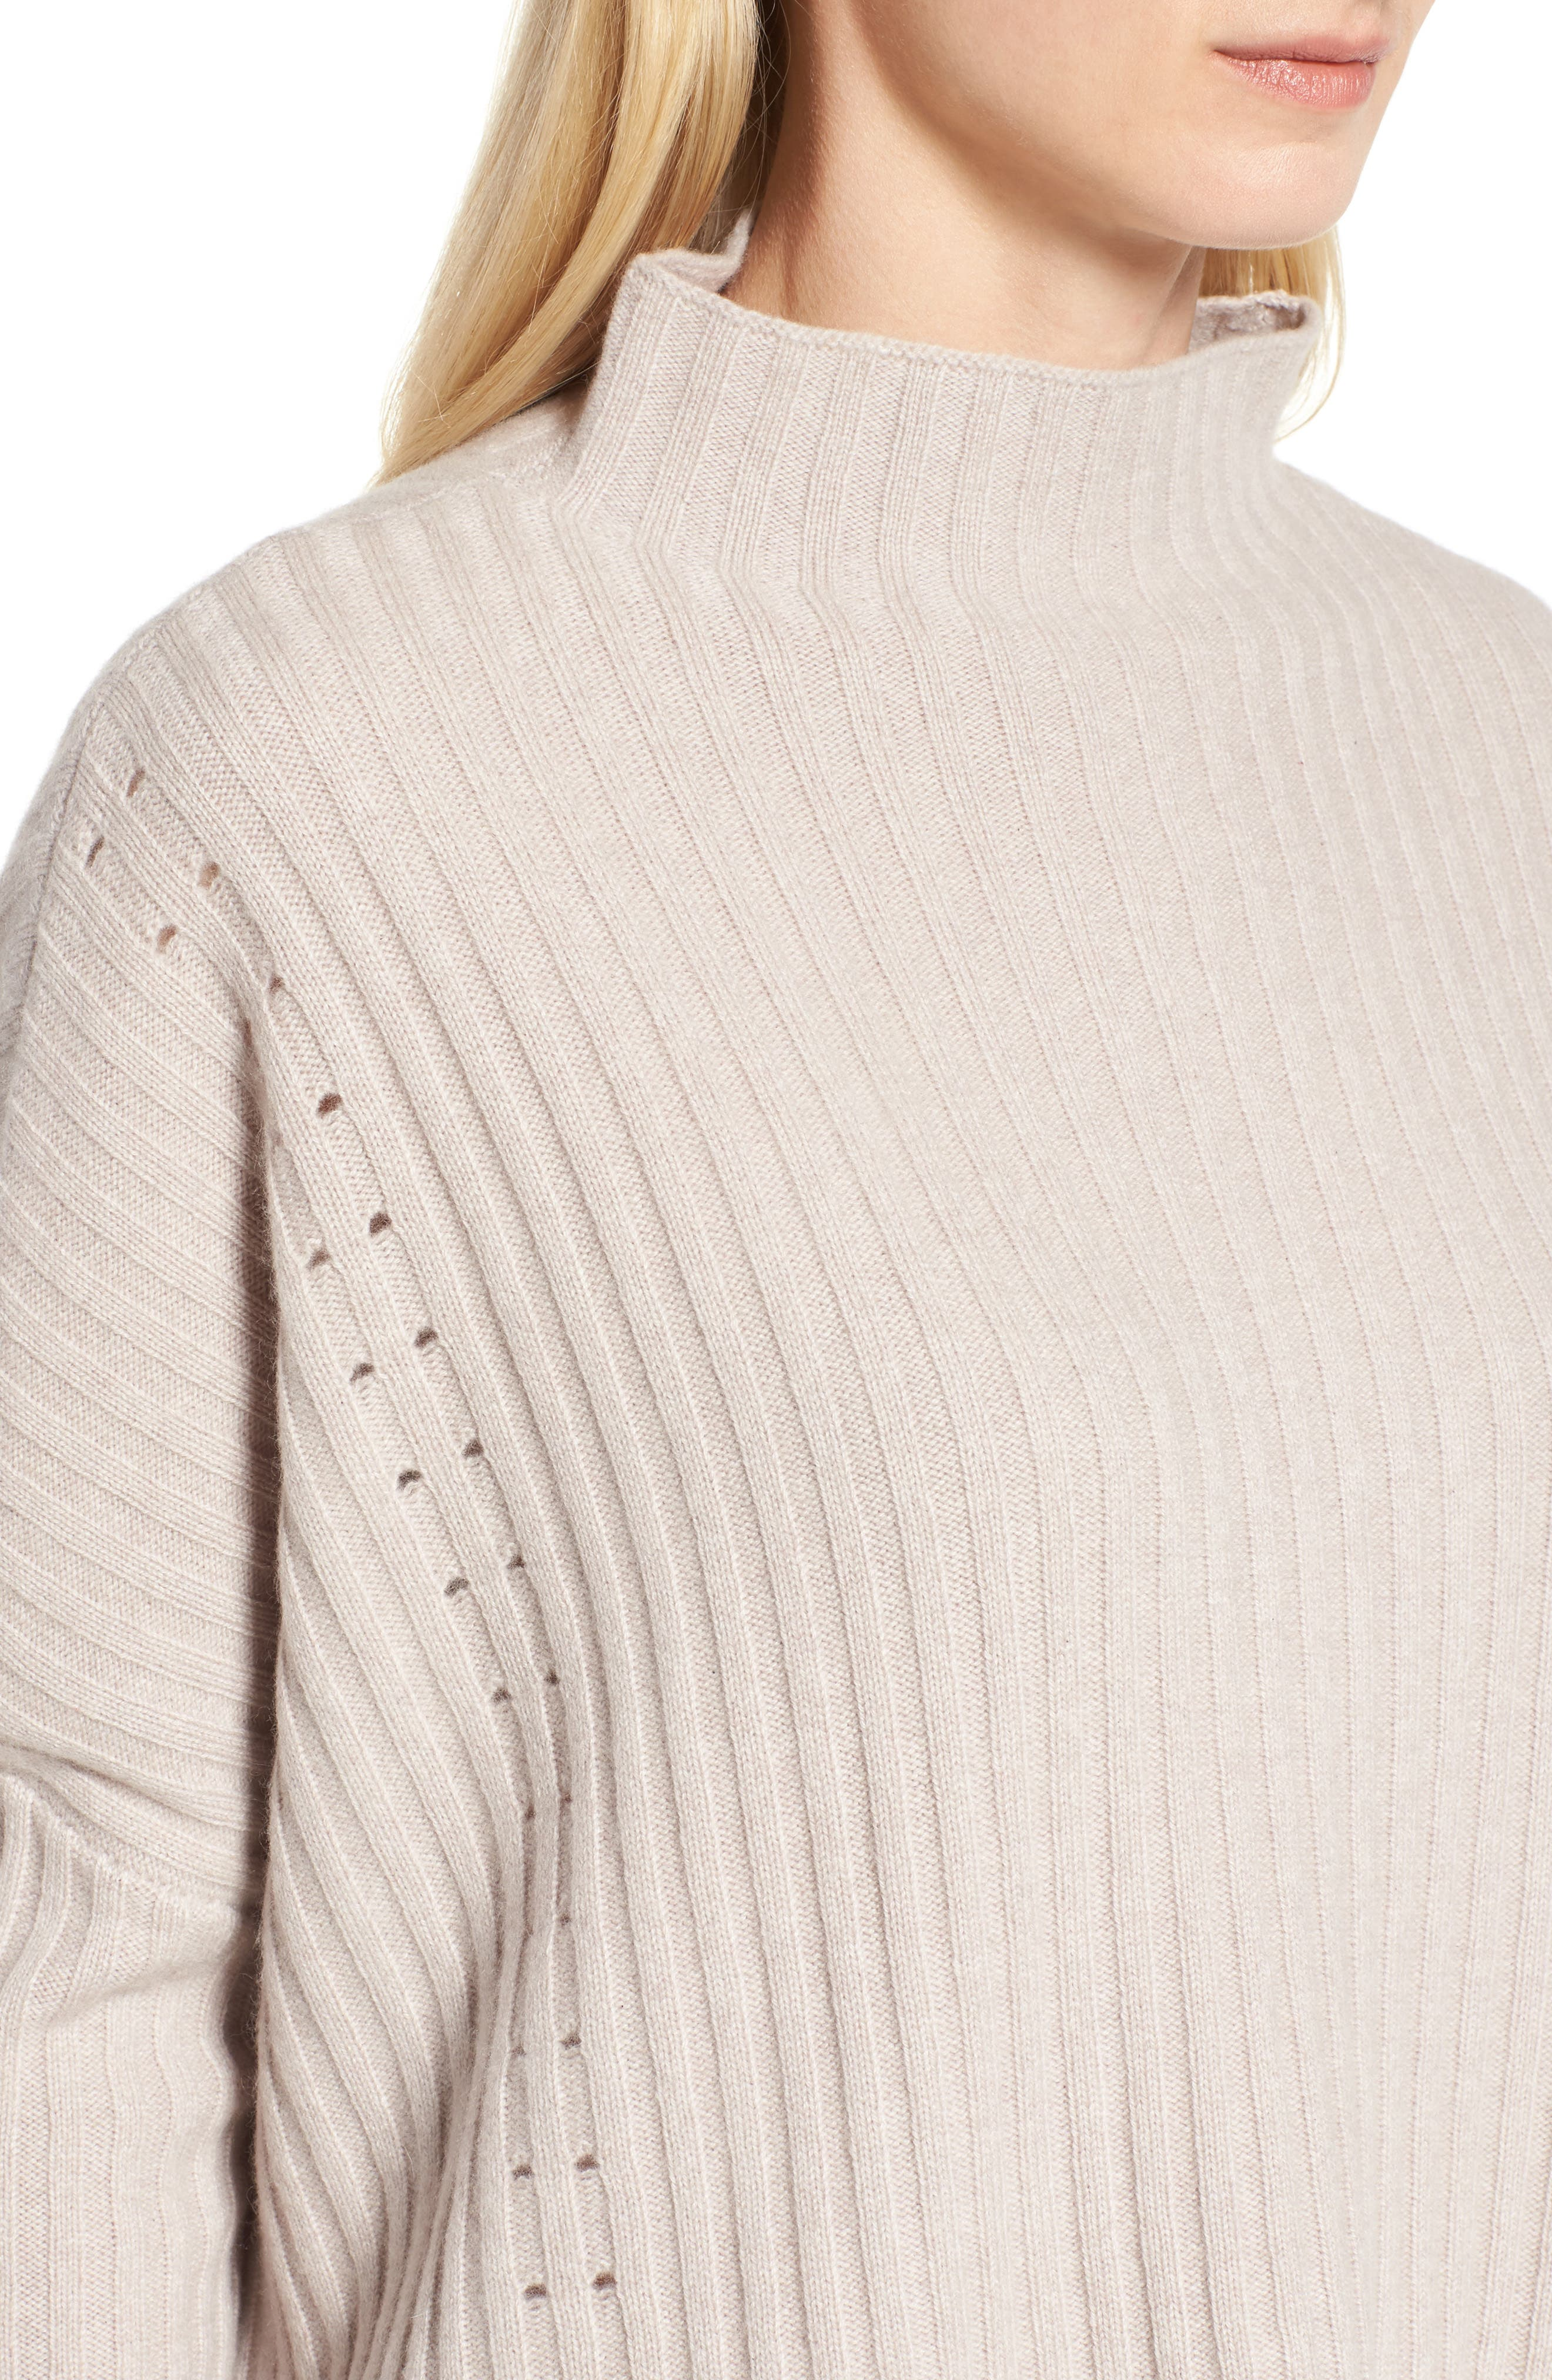 Boxy Ribbed Cashmere Sweater,                             Alternate thumbnail 4, color,                             270